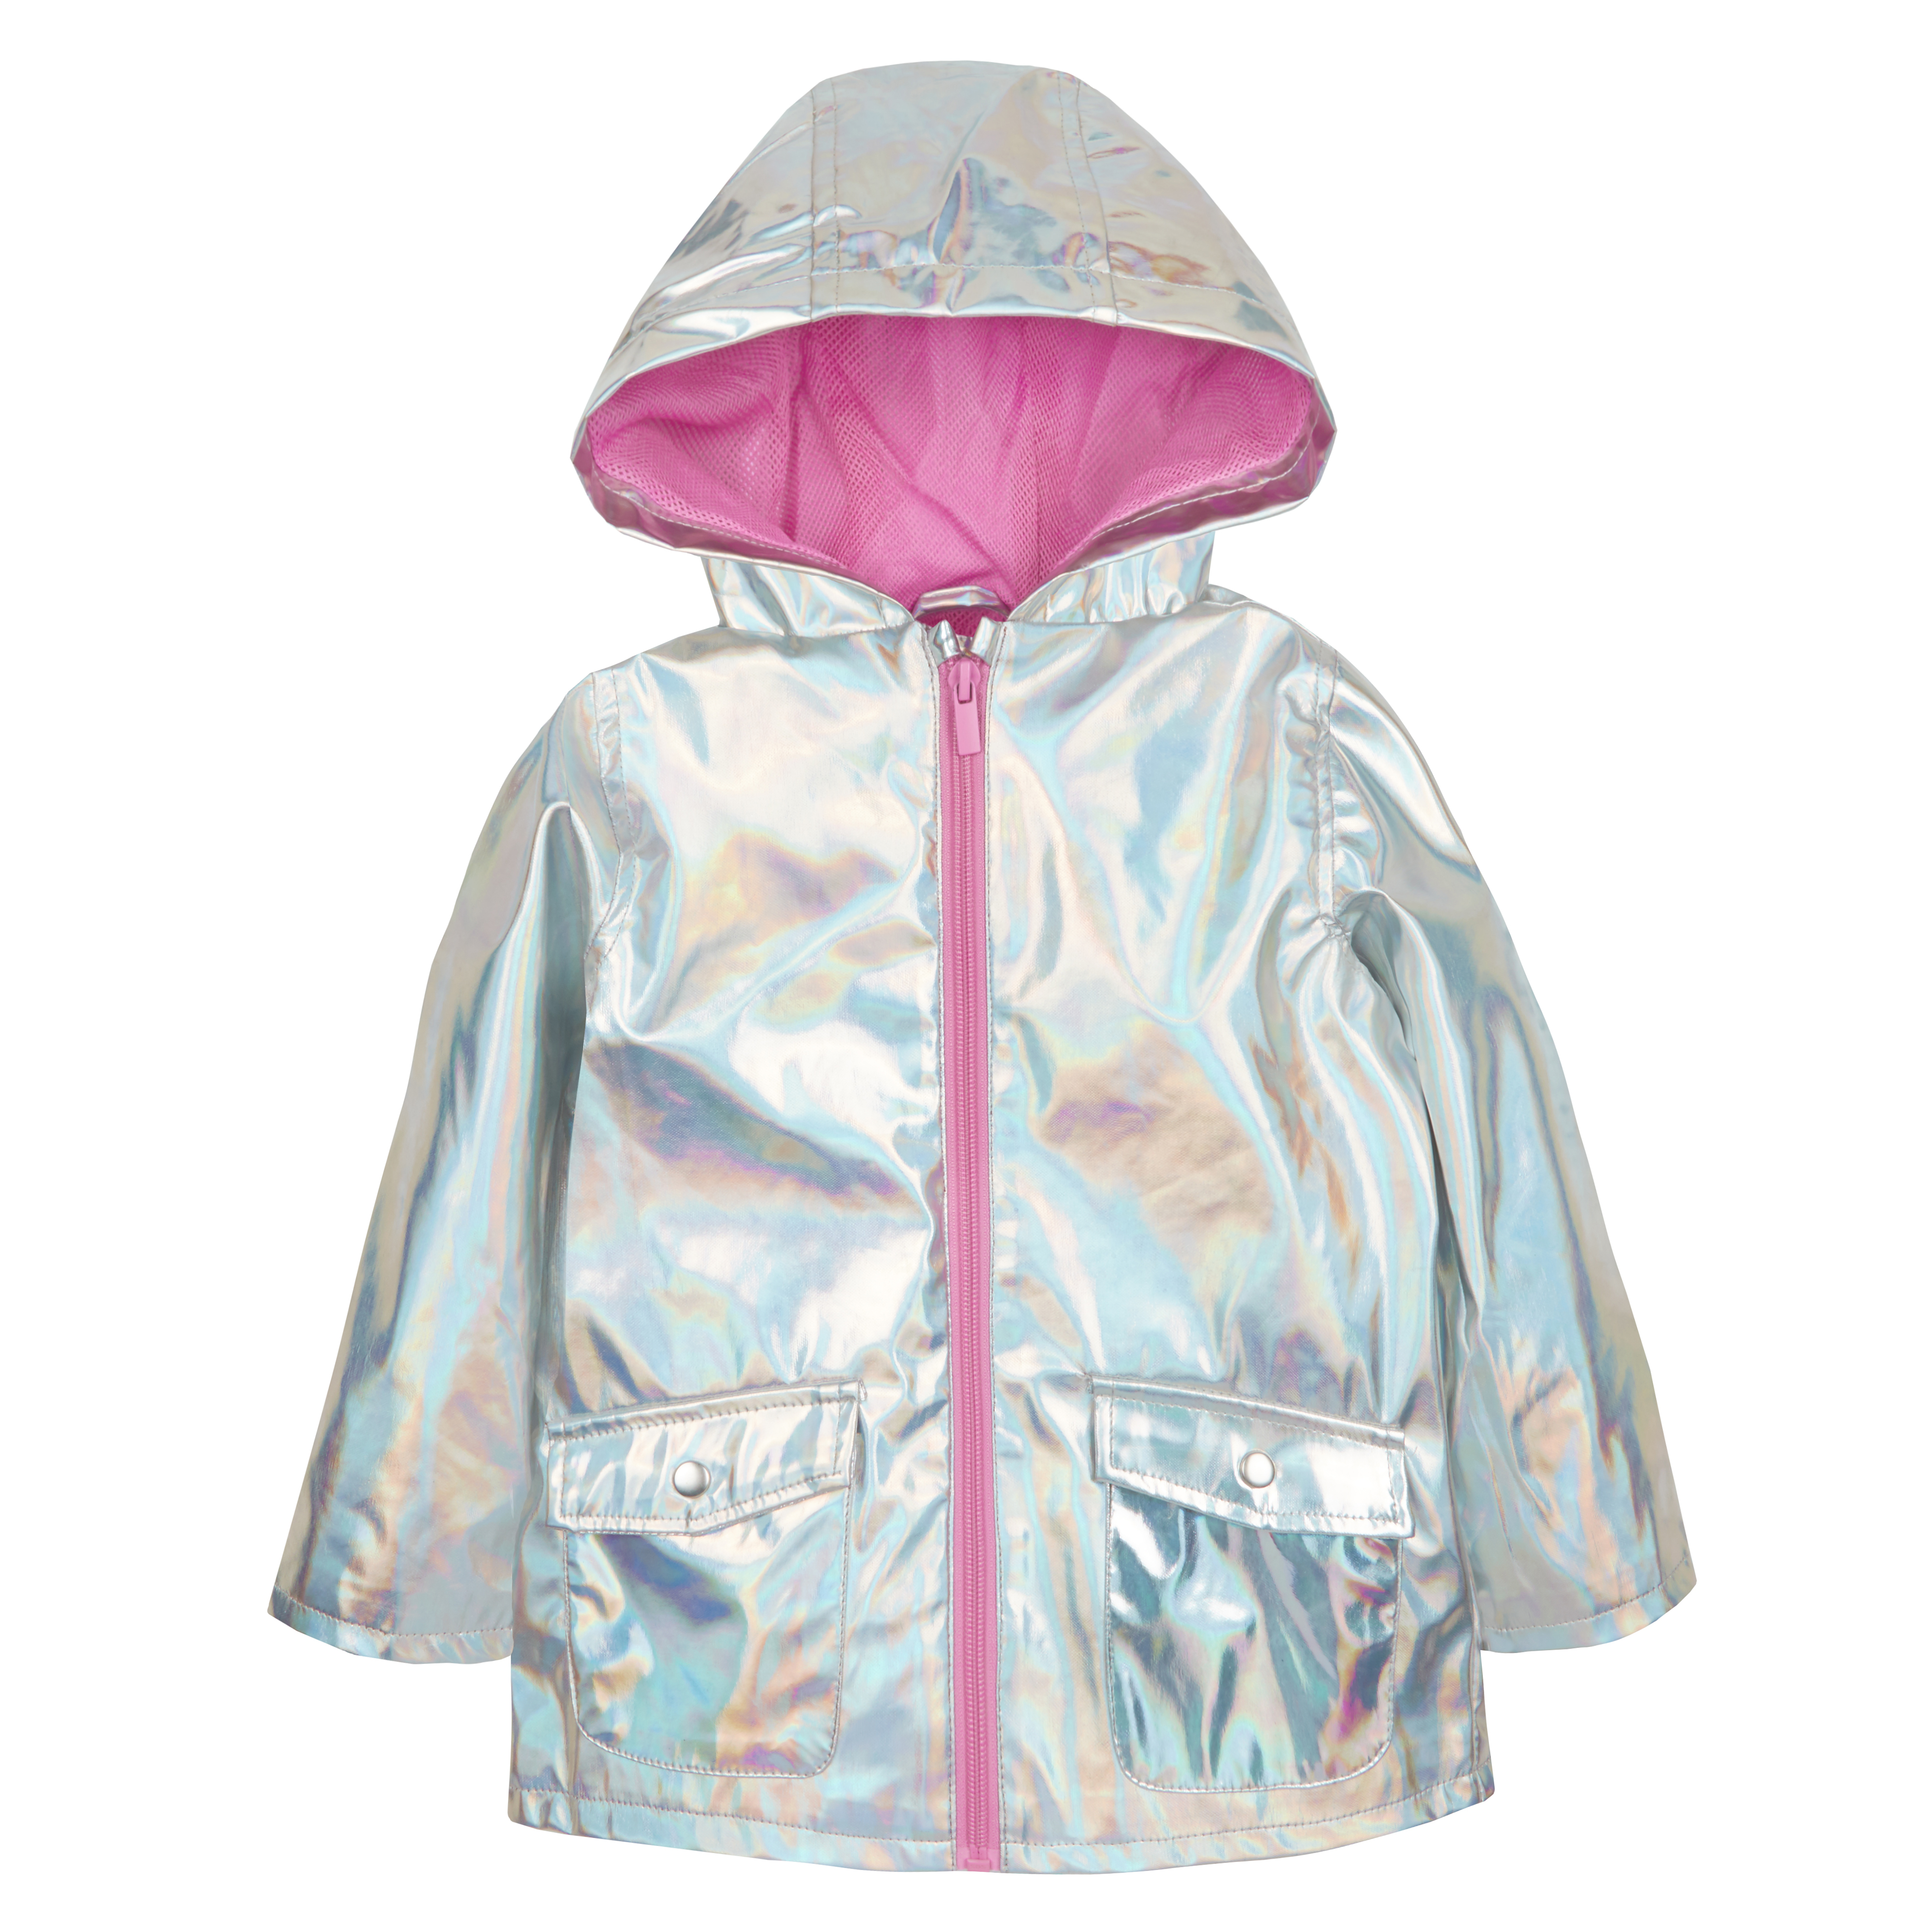 a1c38dd20 Baby Girls Holographic Iridescent Shiny Silver Raincoat Hooded Jacket  Metalic